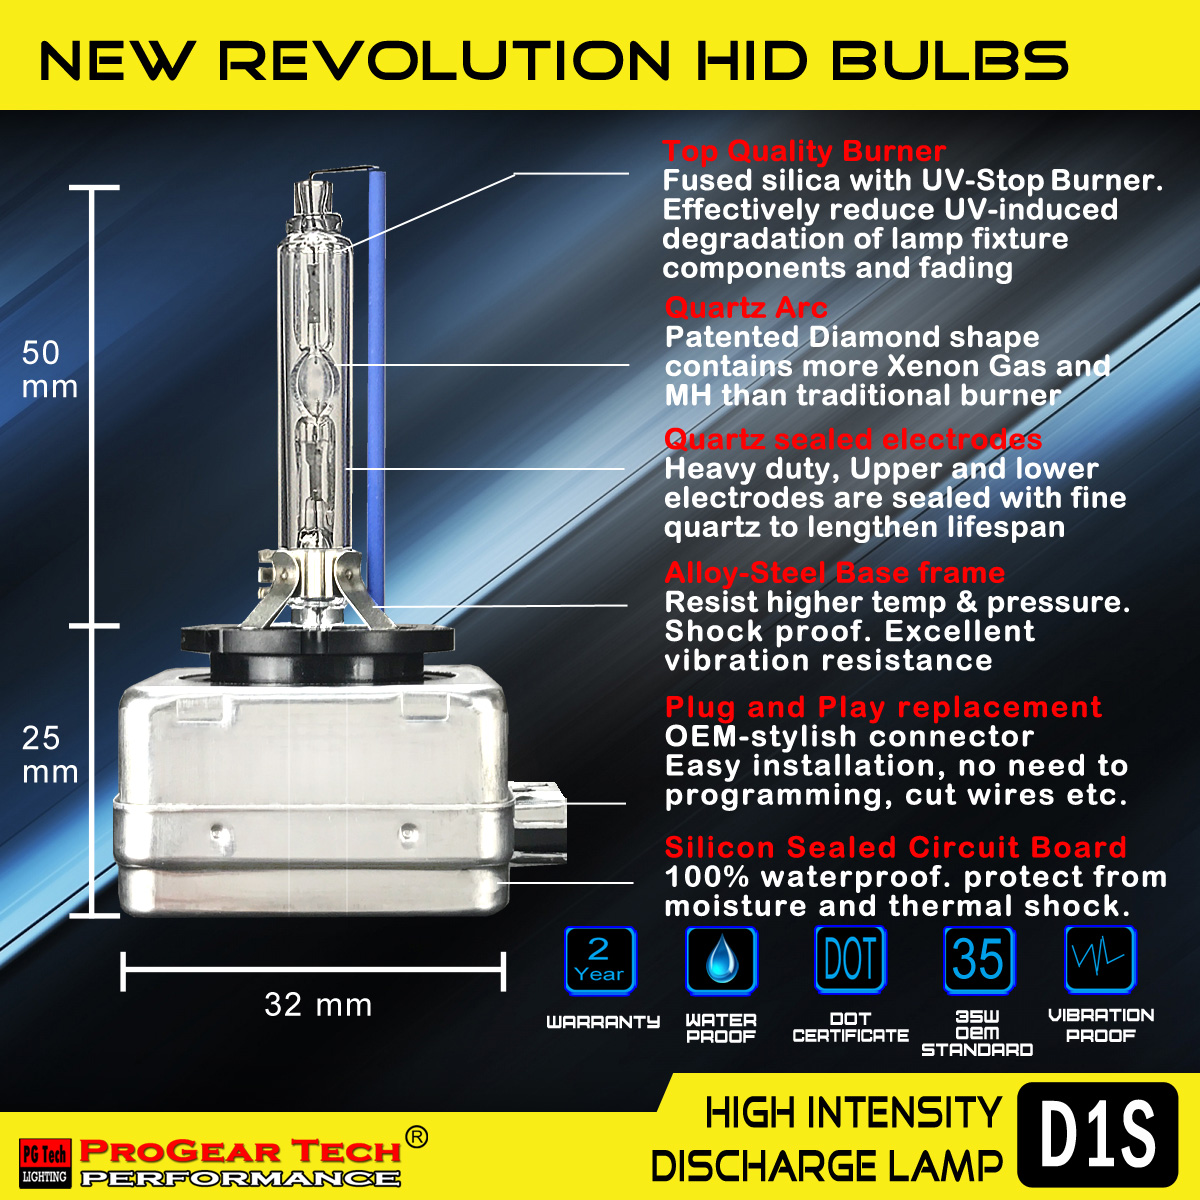 ProGear Tech Heavy Duty D1S HID bulbs detalis